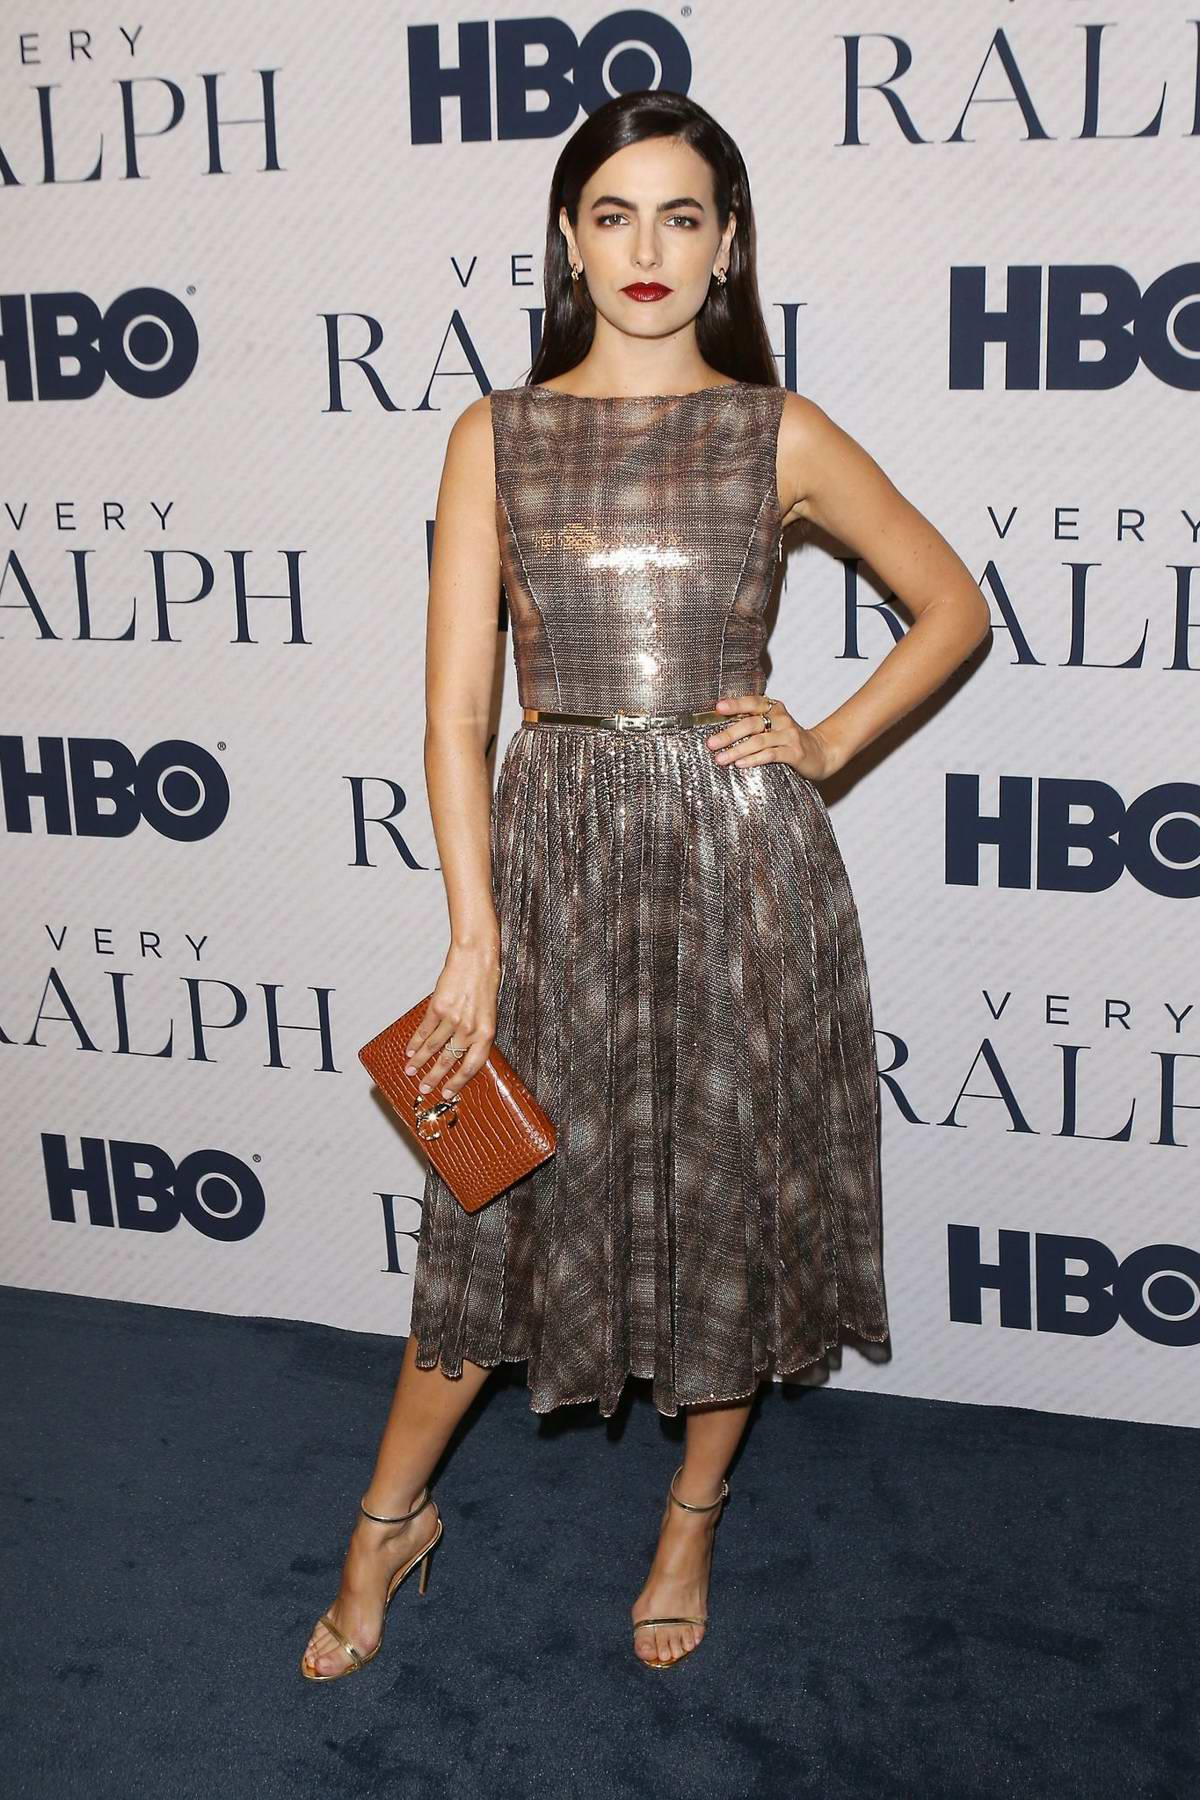 Camilla Belle attends the Premiere of HBO Documentary film 'Very Ralph' at The Paley Center in Beverly Hills, Los Angeles